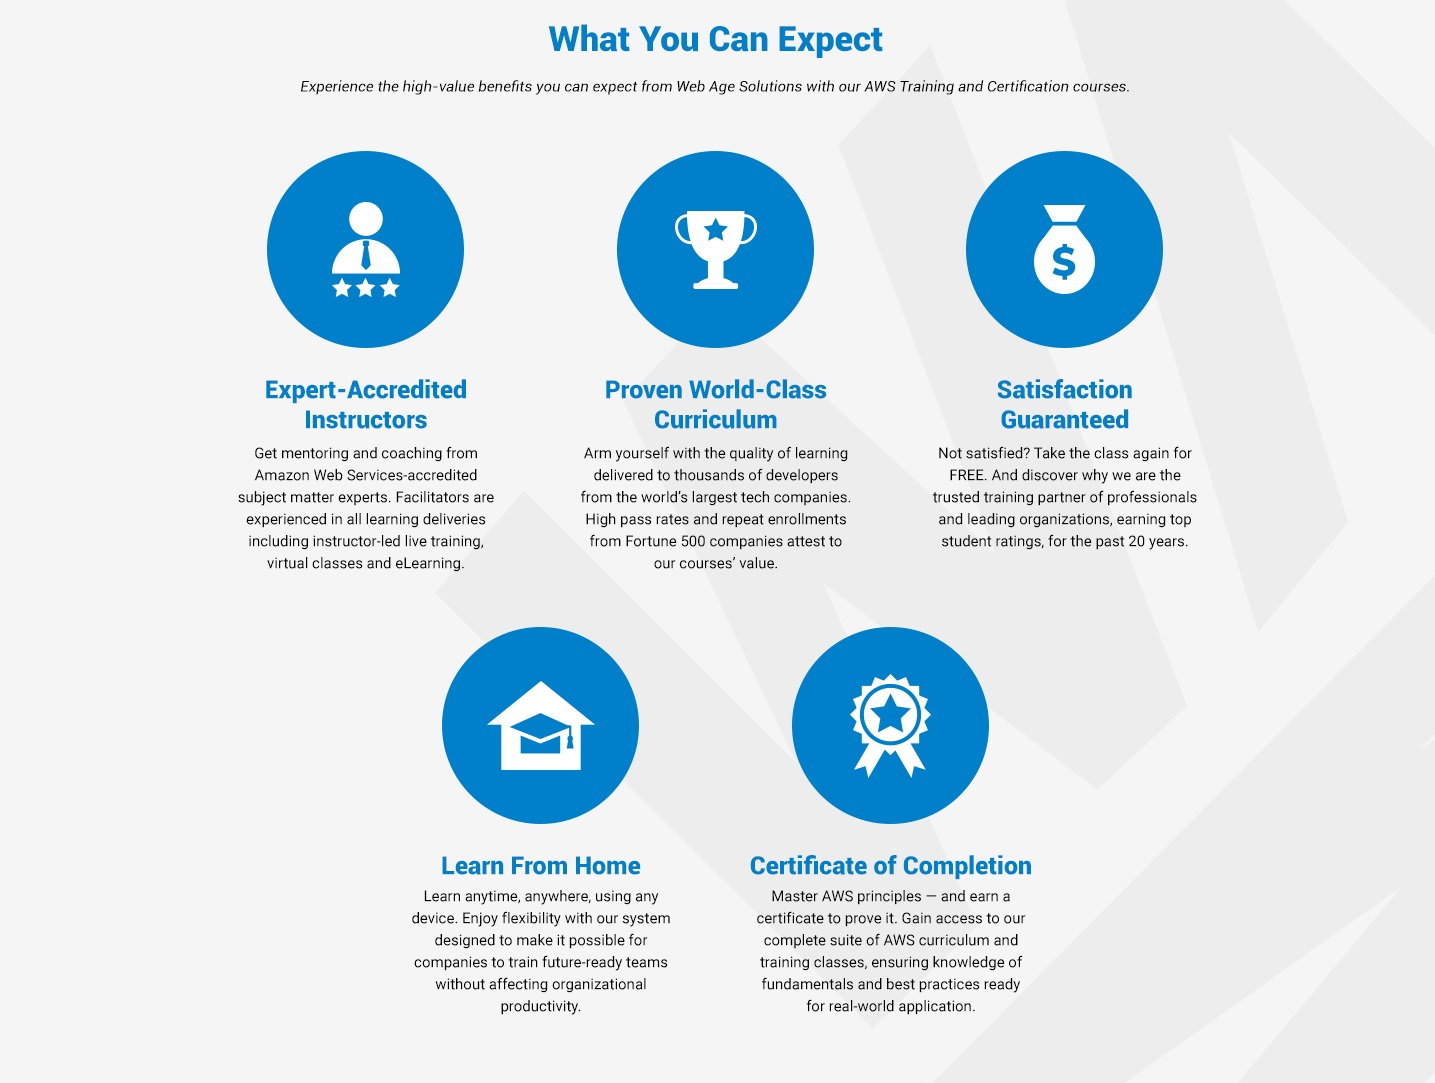 what you can expect with Web Age Solutions